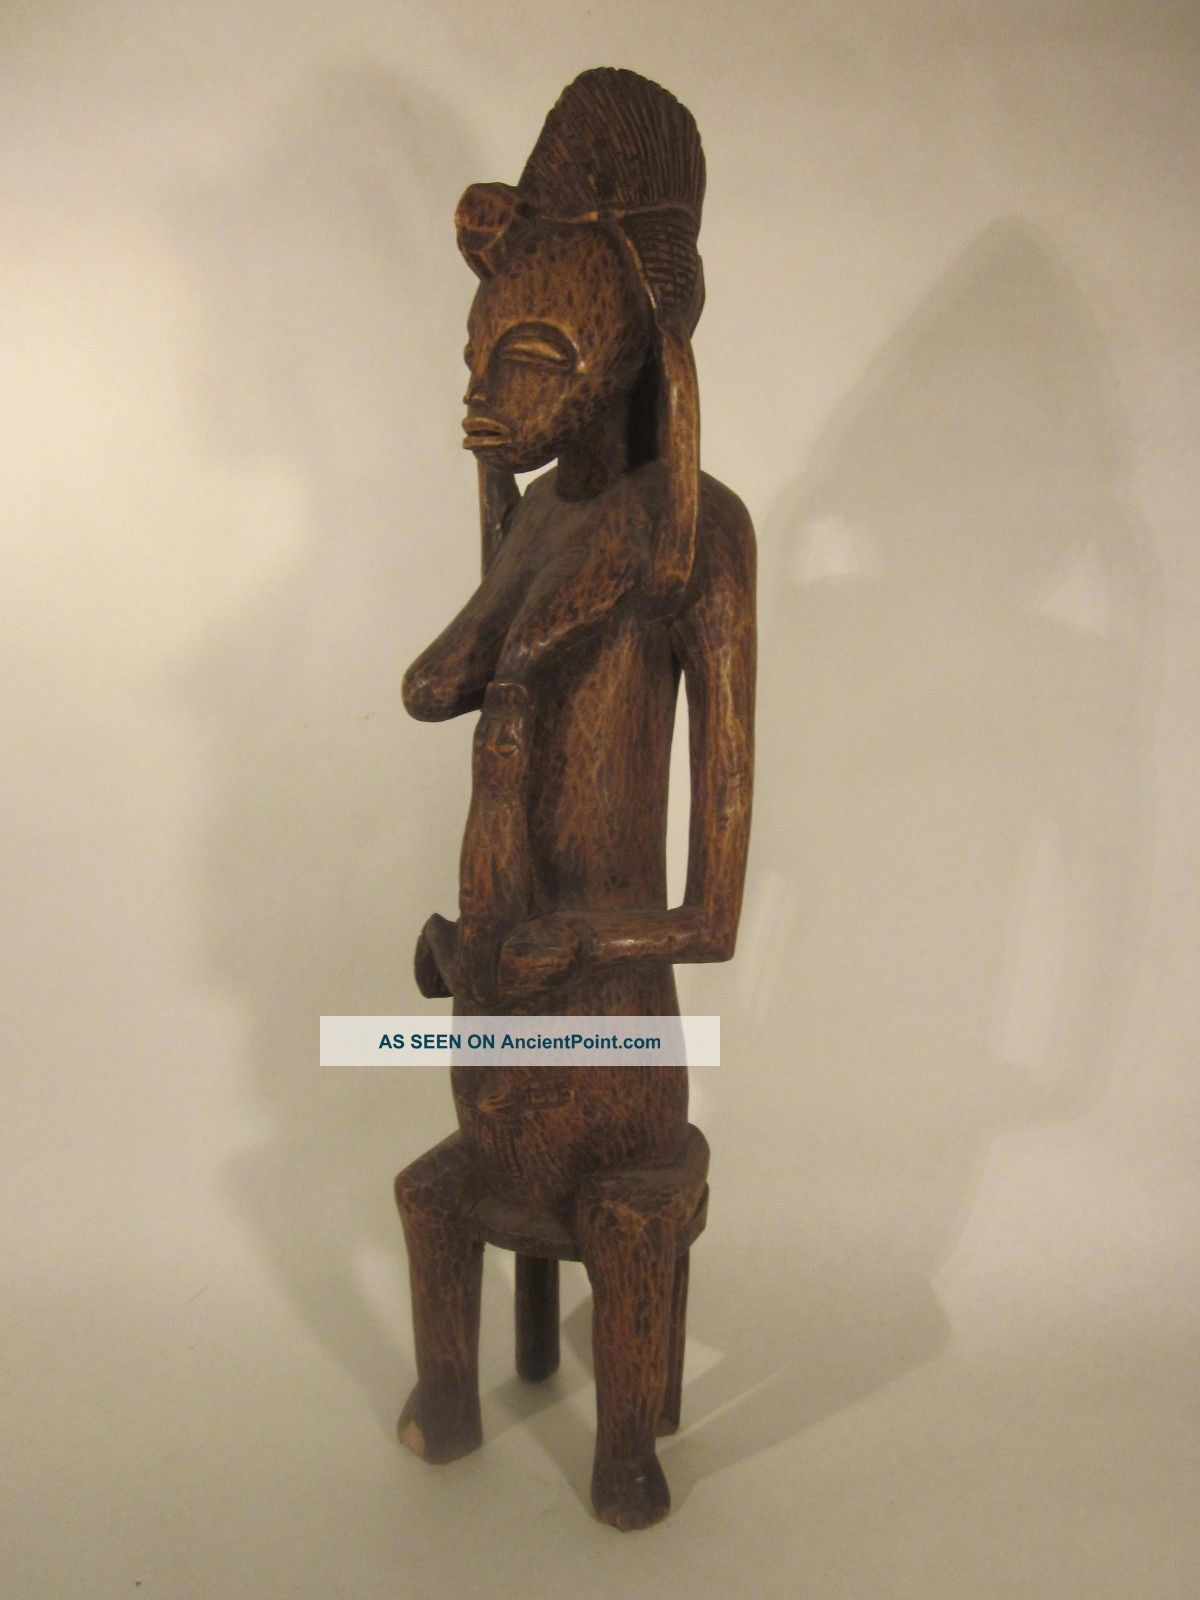 Senufo Fertility Figure,  Mid - Century,  Carved On Heavy Wood,  Ivory Coast,  Mali Sculptures & Statues photo